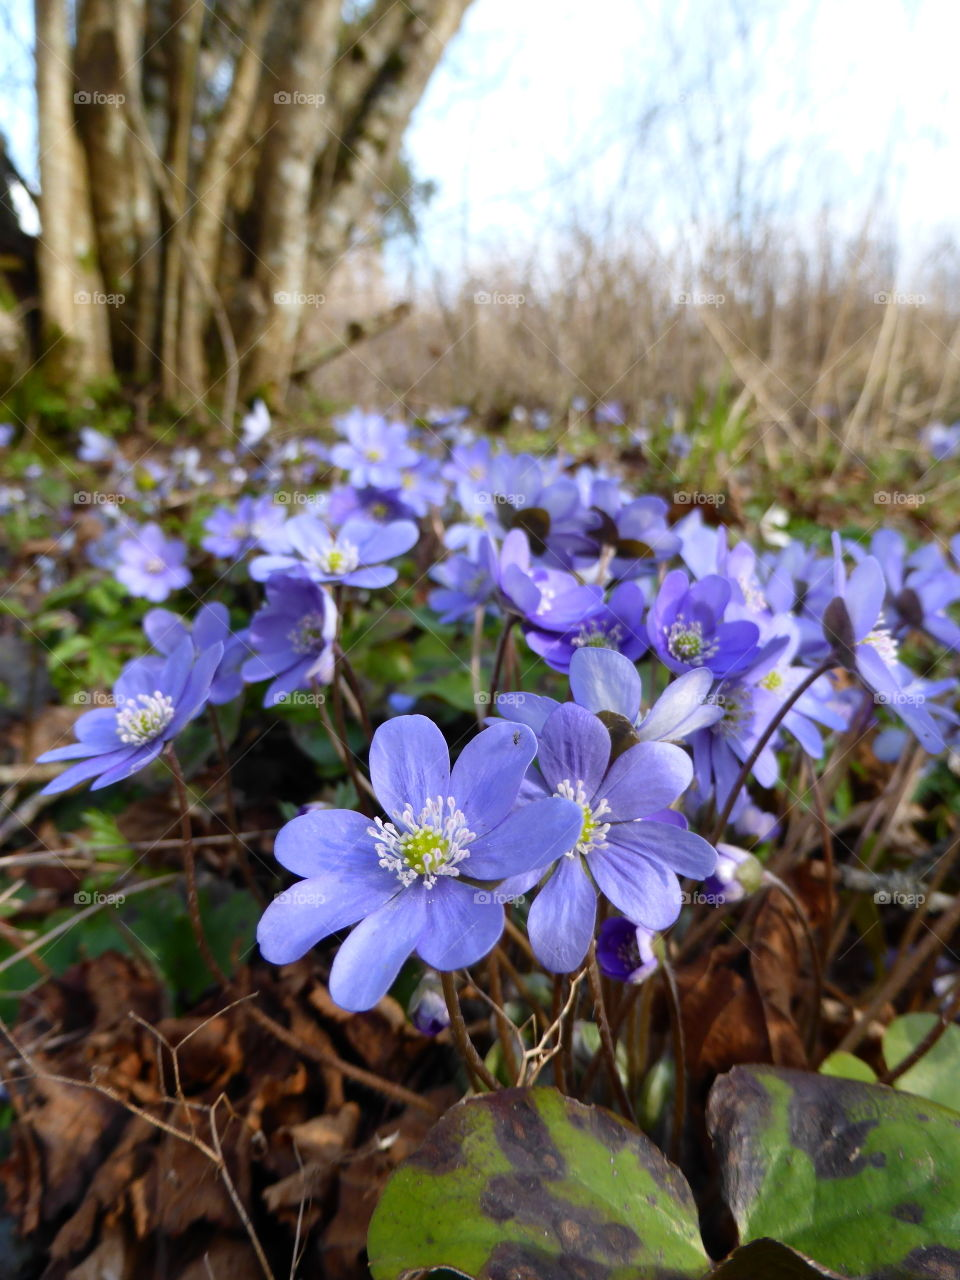 Anemones in the forest